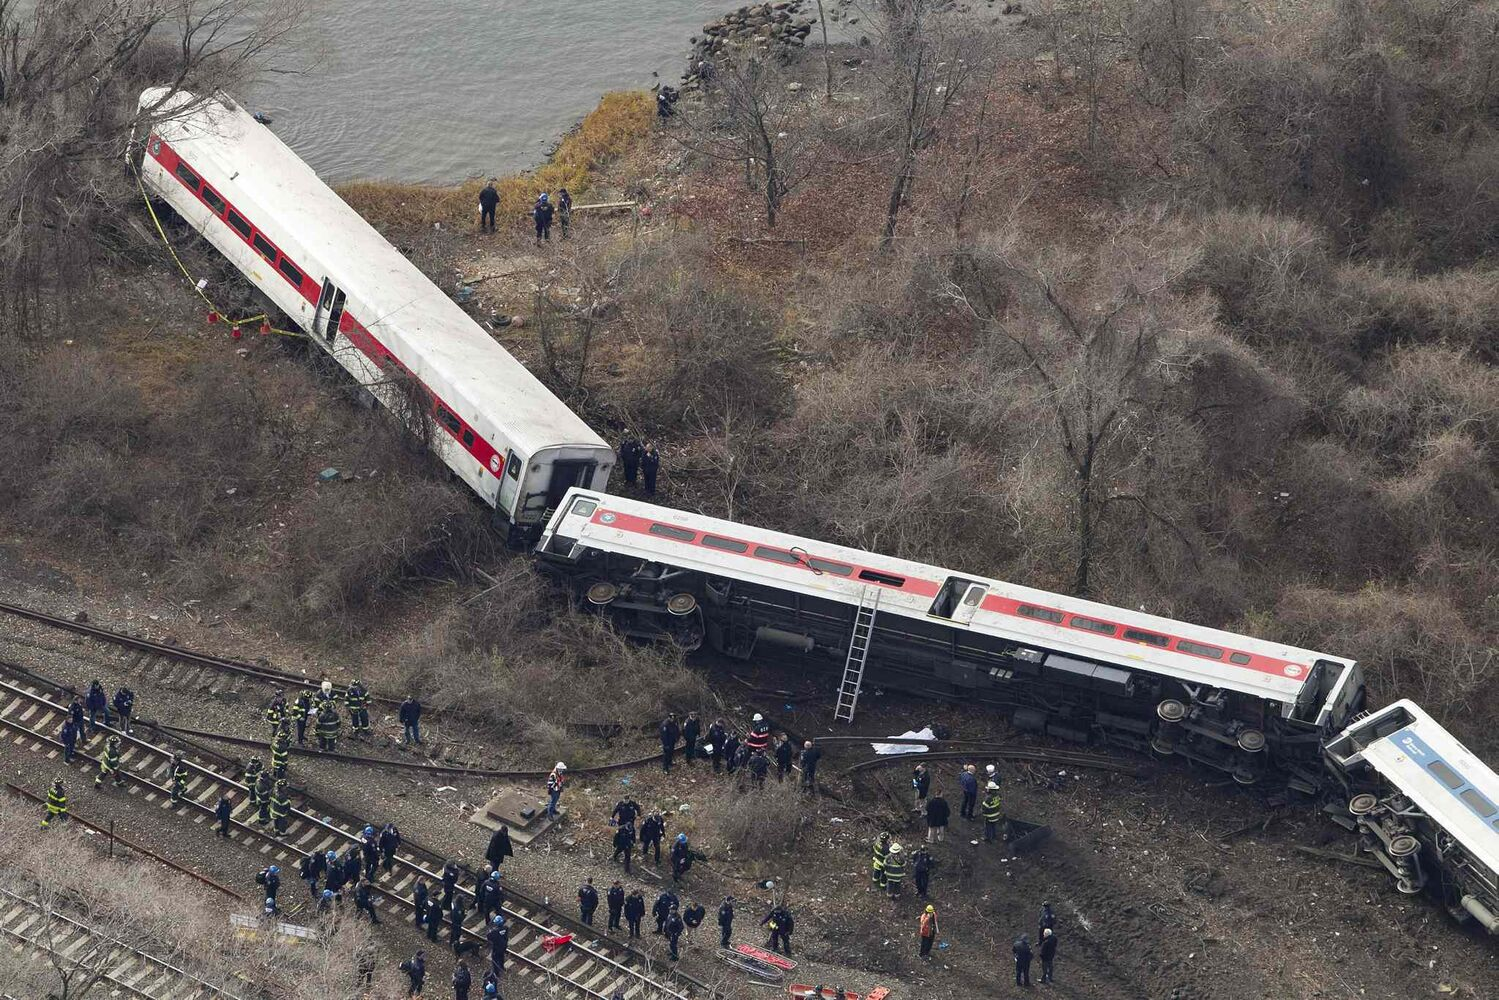 Emergency rescue personnel work the scene of the Metro-North passenger train derailment.